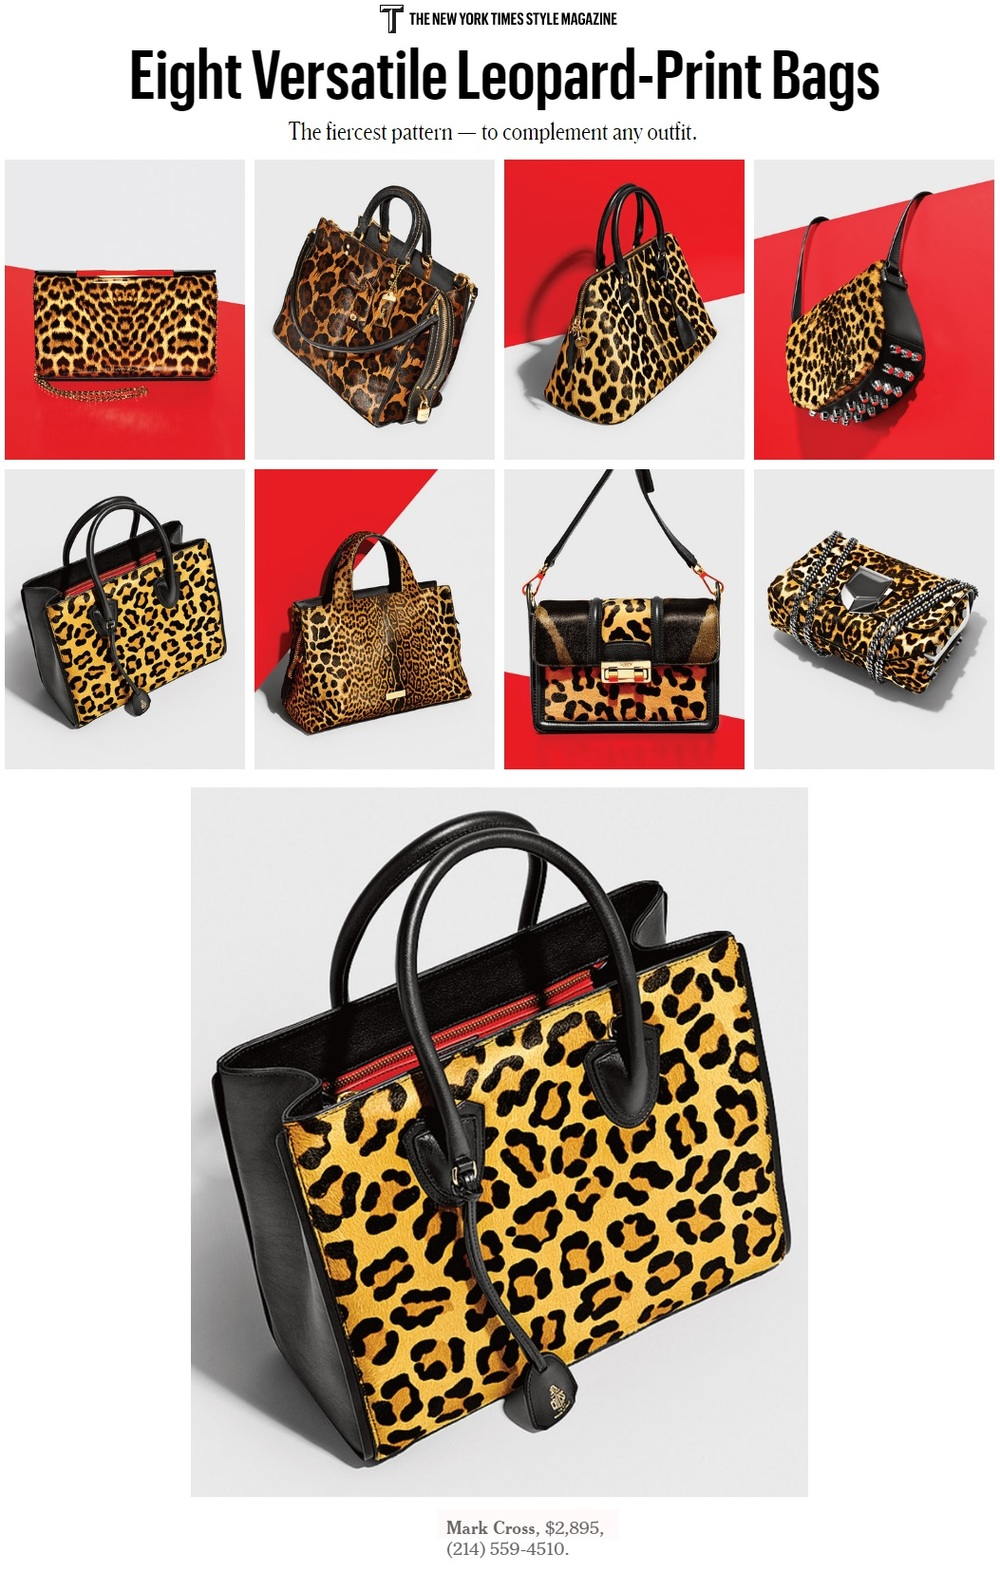 NY Times.com - Eight Versatile Leopard-Print Bags - 5.23.16.jpg